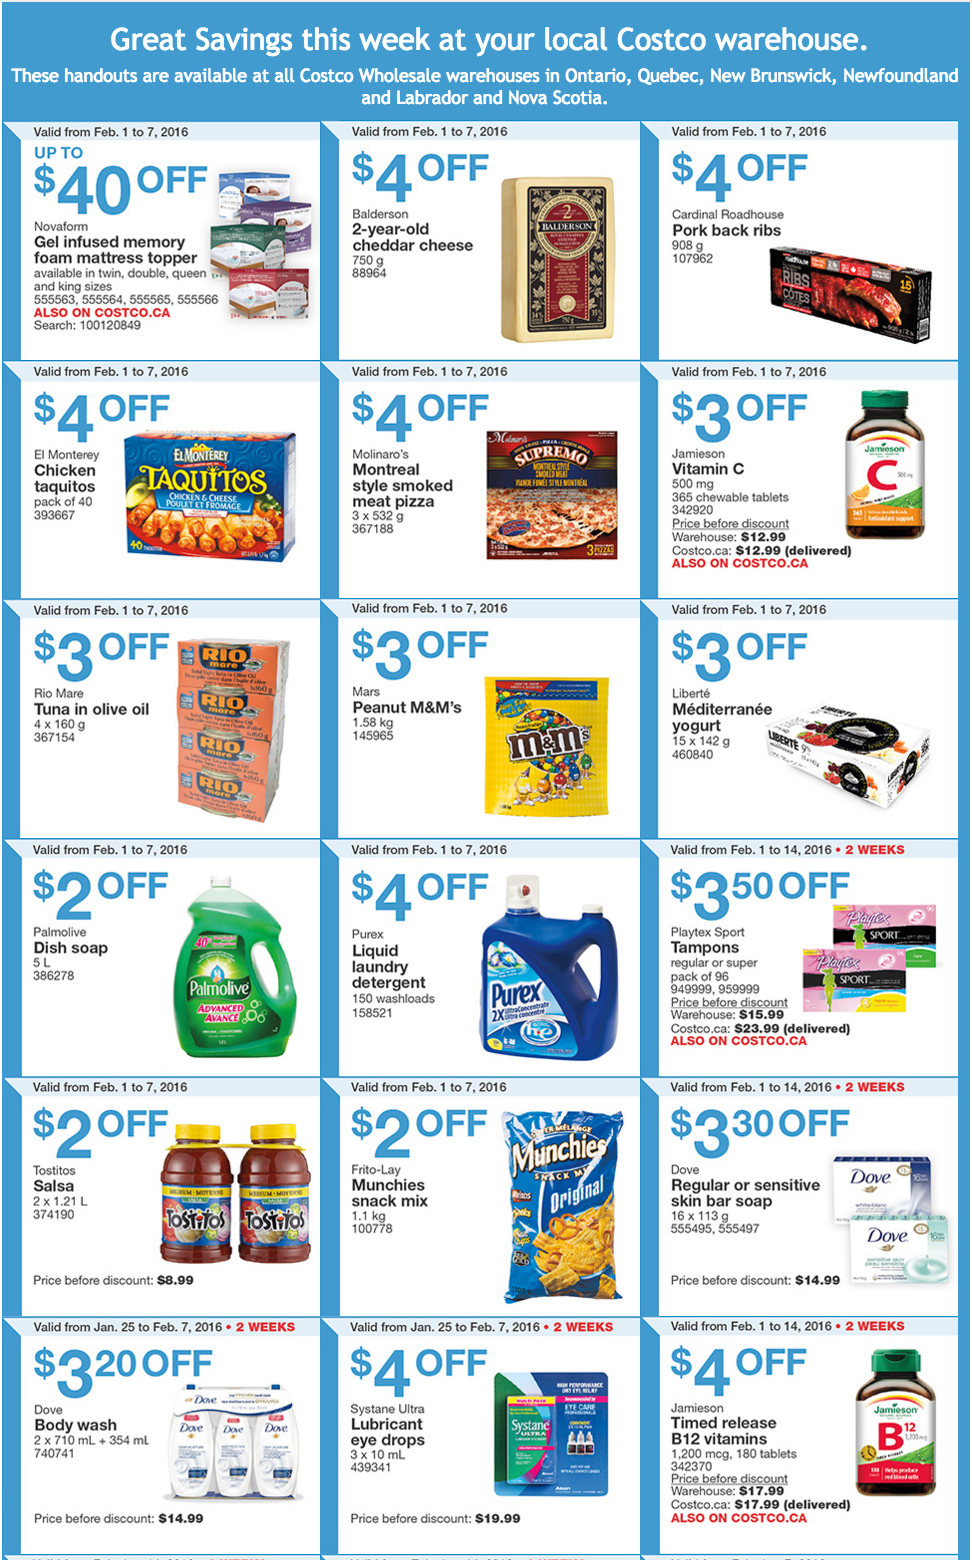 Costco Eastern Canada Coupons Ontario Quebec Atlantic Ends February 7 2016 Groceryalerts - Quebec City Coupons